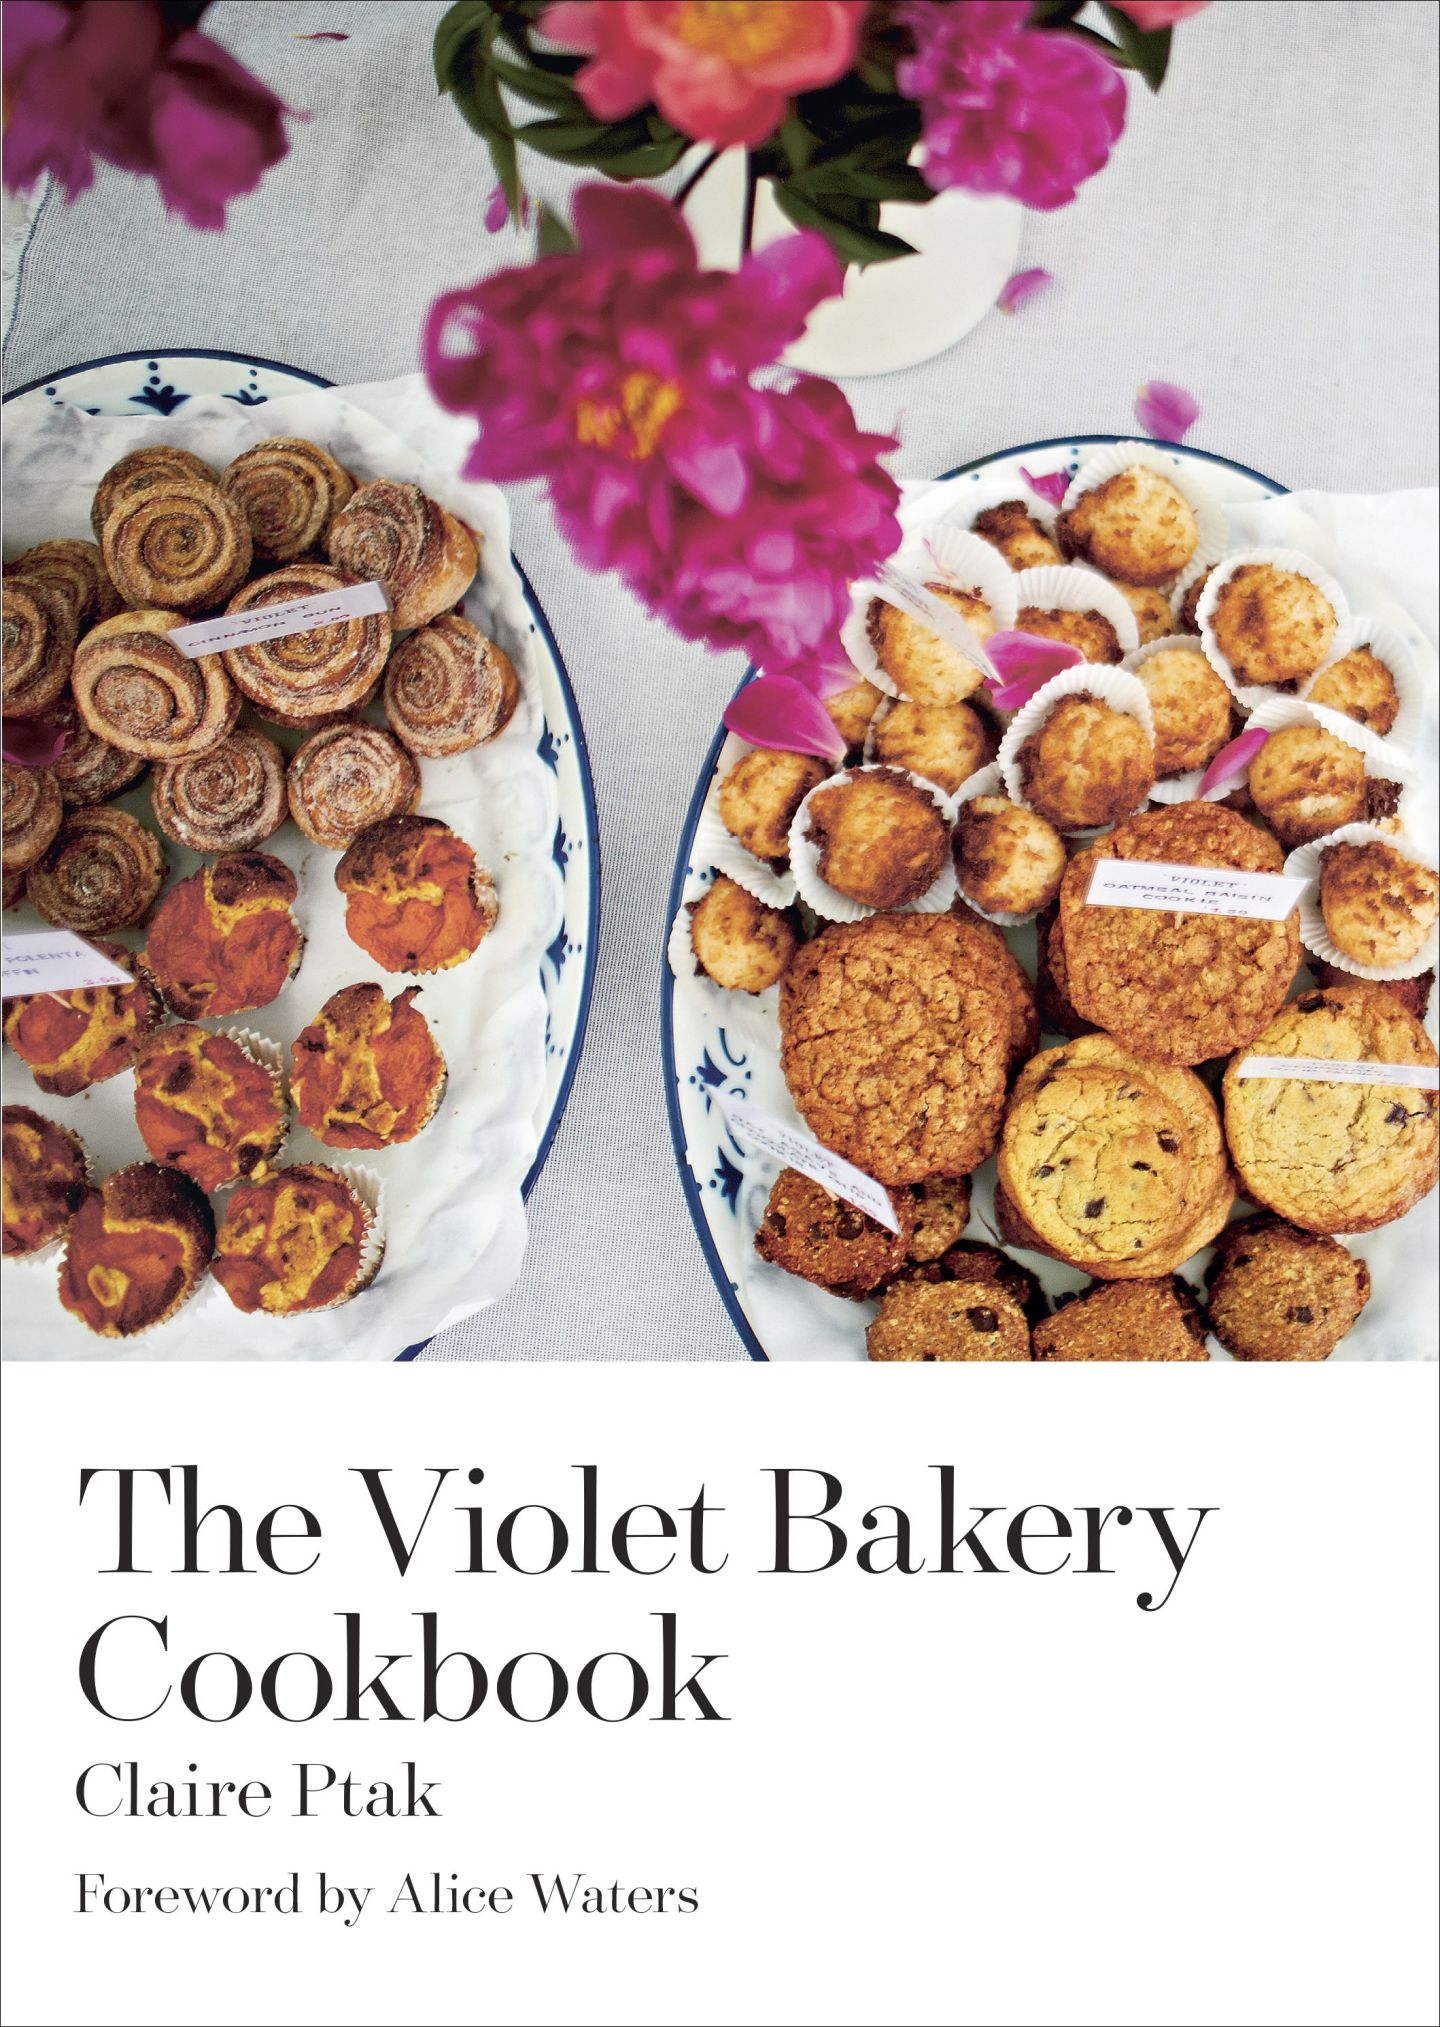 The Violet Bakery Cookbook by Claire Ptak